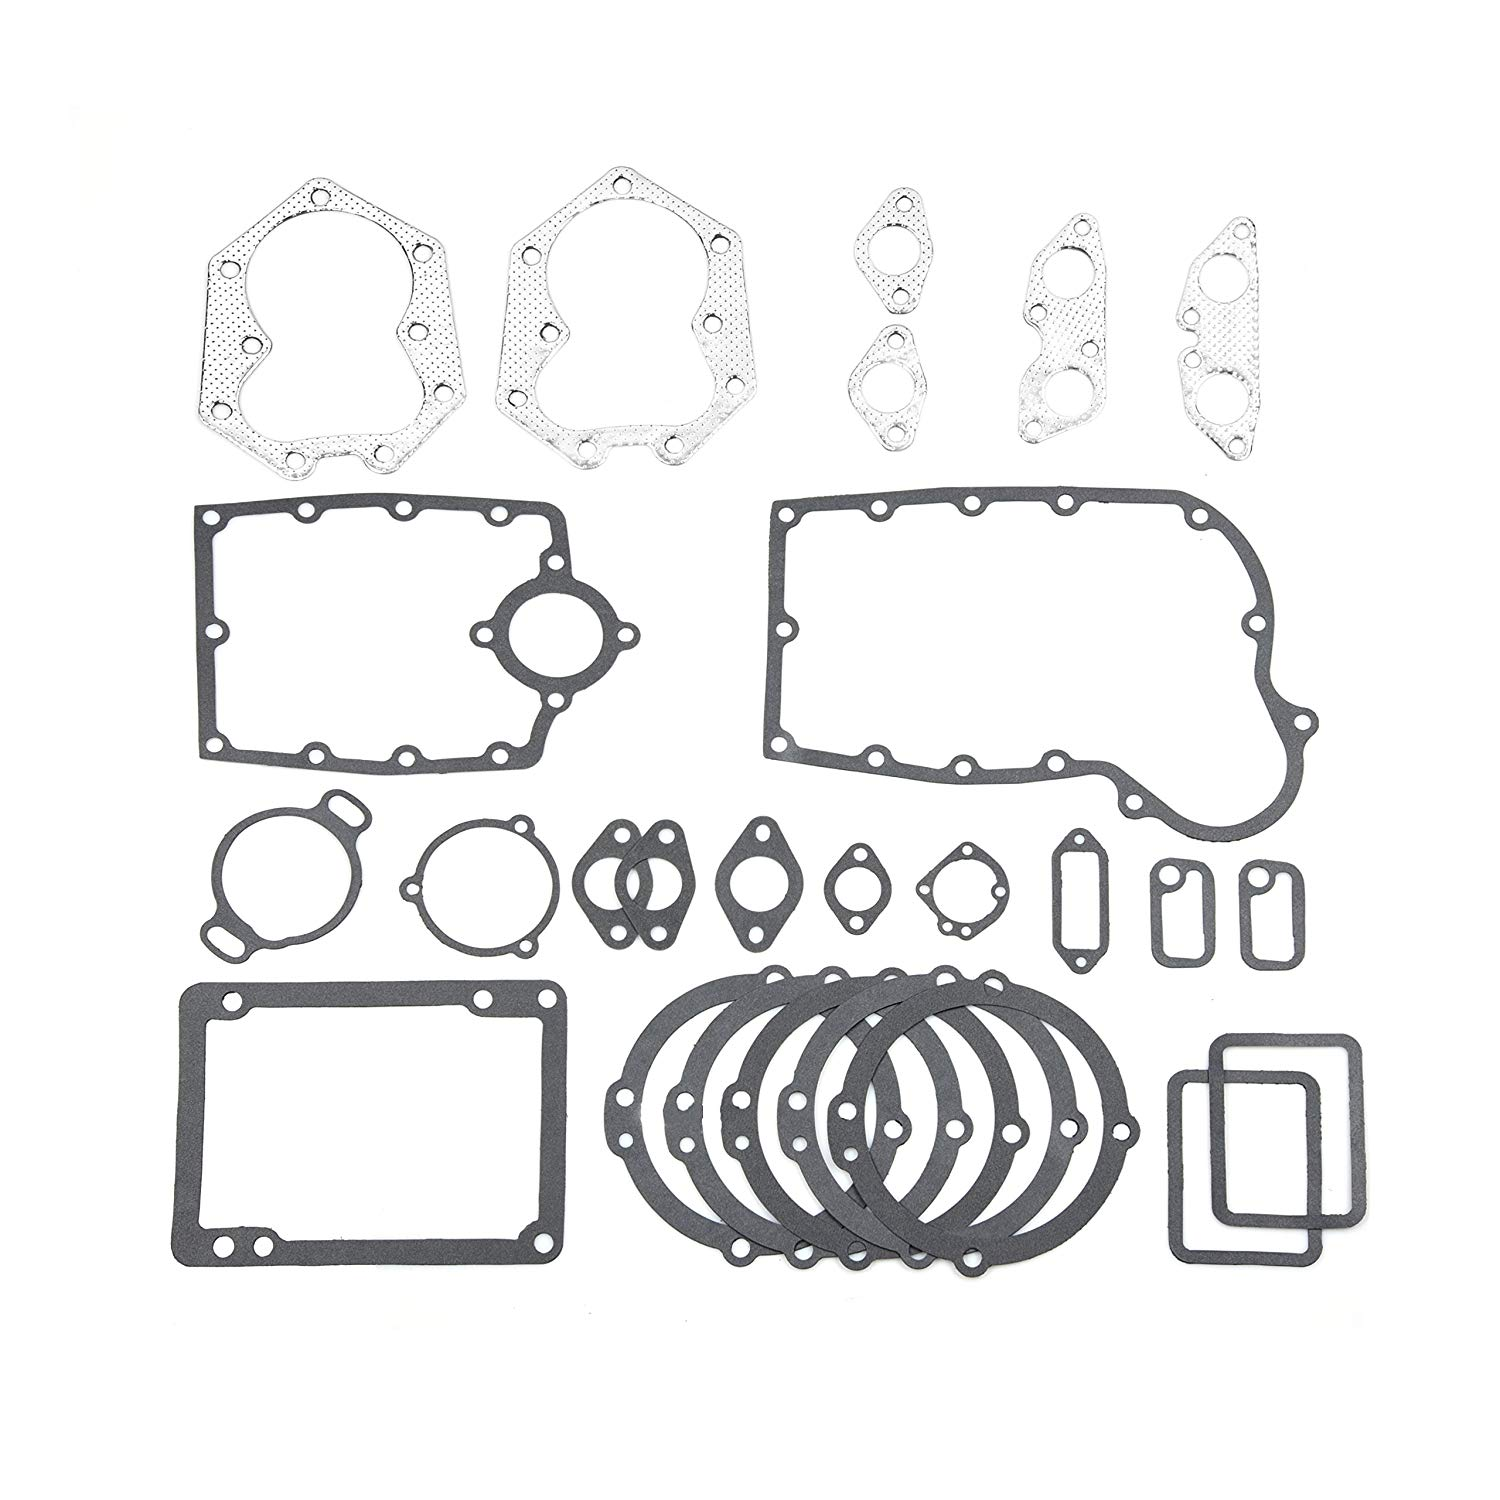 Motorcycle Replaces Complete Gasket Set for Kohler 18HP